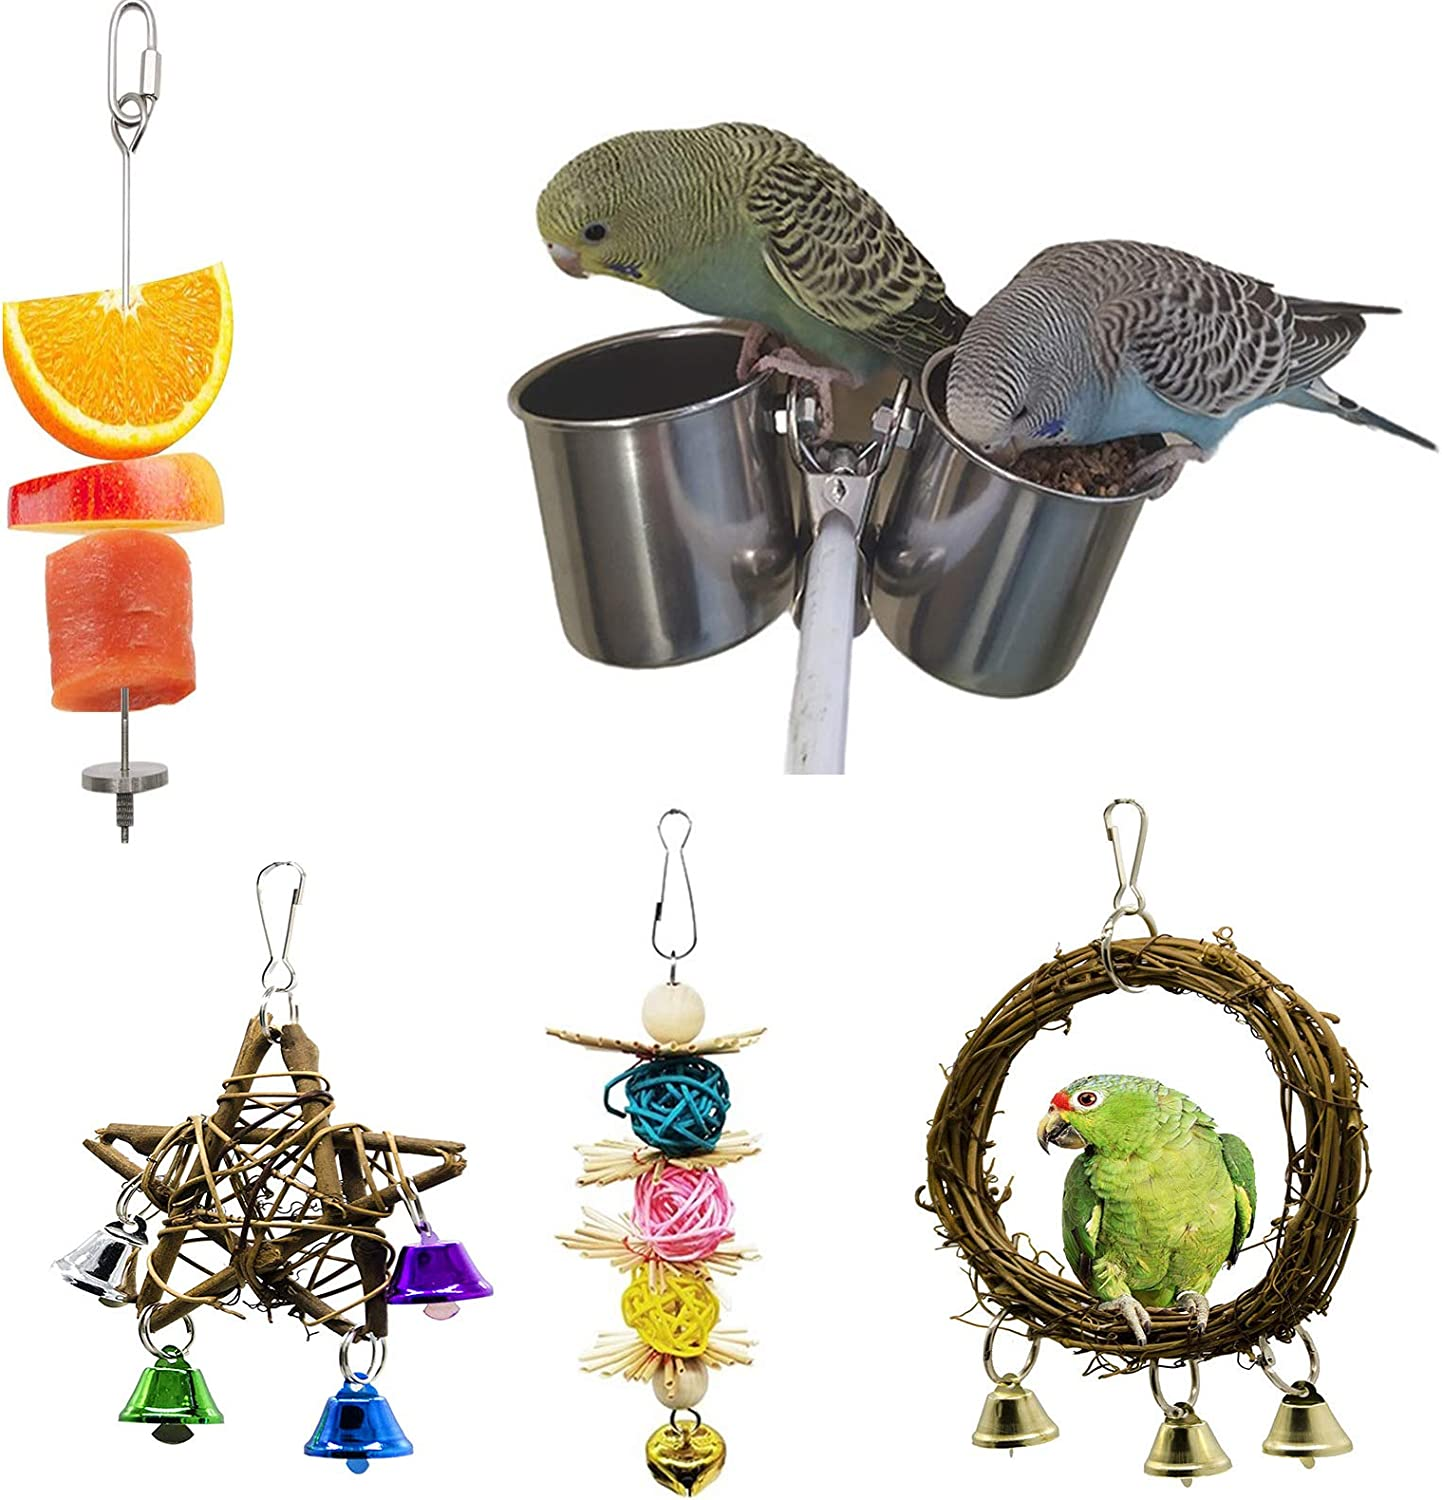 5 Packs Parrot Feeder Bowl, Bird Feeder for Cage, Fruit Vegetable Stick Holder, Stainless Steel Bird Feeder Cup,Water Food Dish for Parakeet, Cockatiel, Macaw, Conure, Budgie, Big Small Love Bird